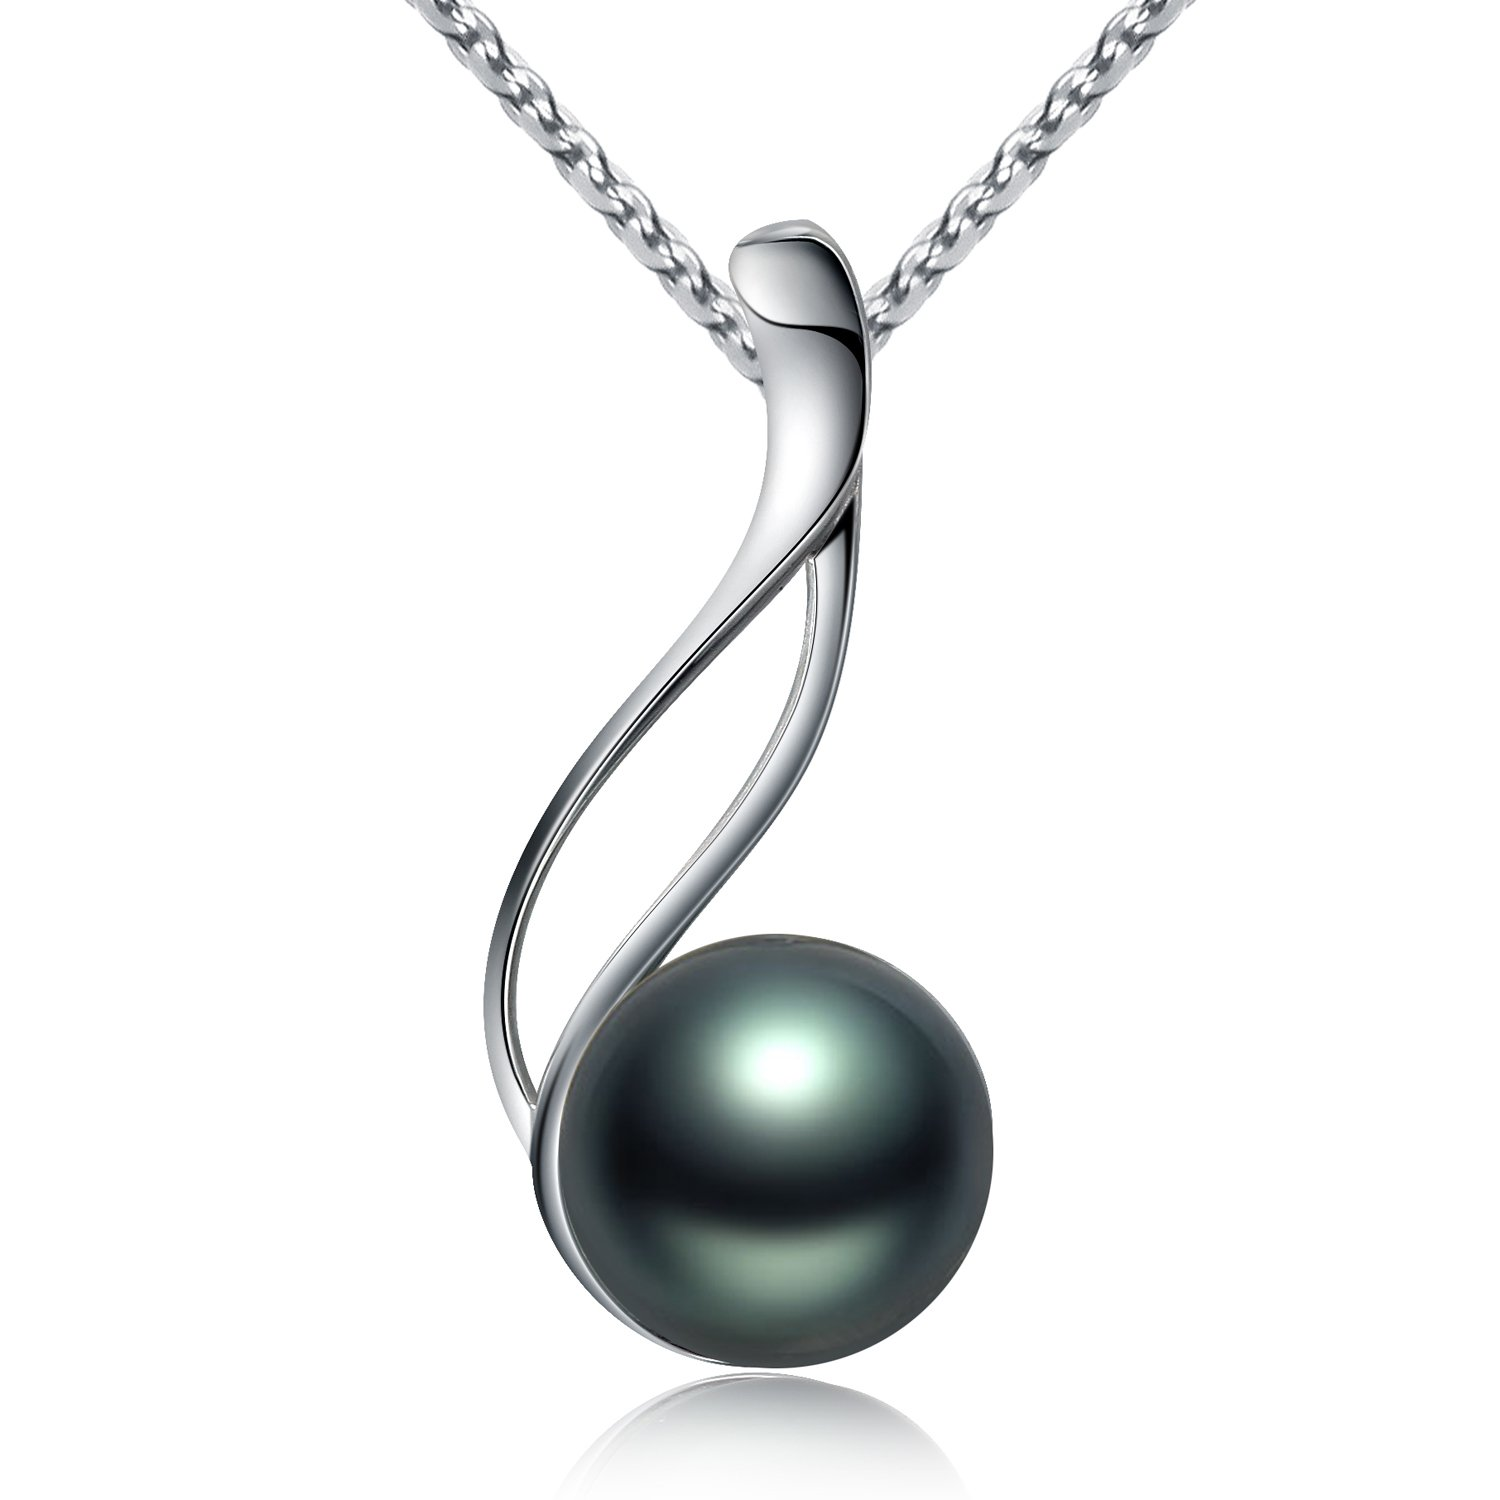 Amazon viki lynn tahitian cultured black pearl pendant necklace amazon viki lynn tahitian cultured black pearl pendant necklace 9 10mm round sterling silver for women jewelry aloadofball Gallery